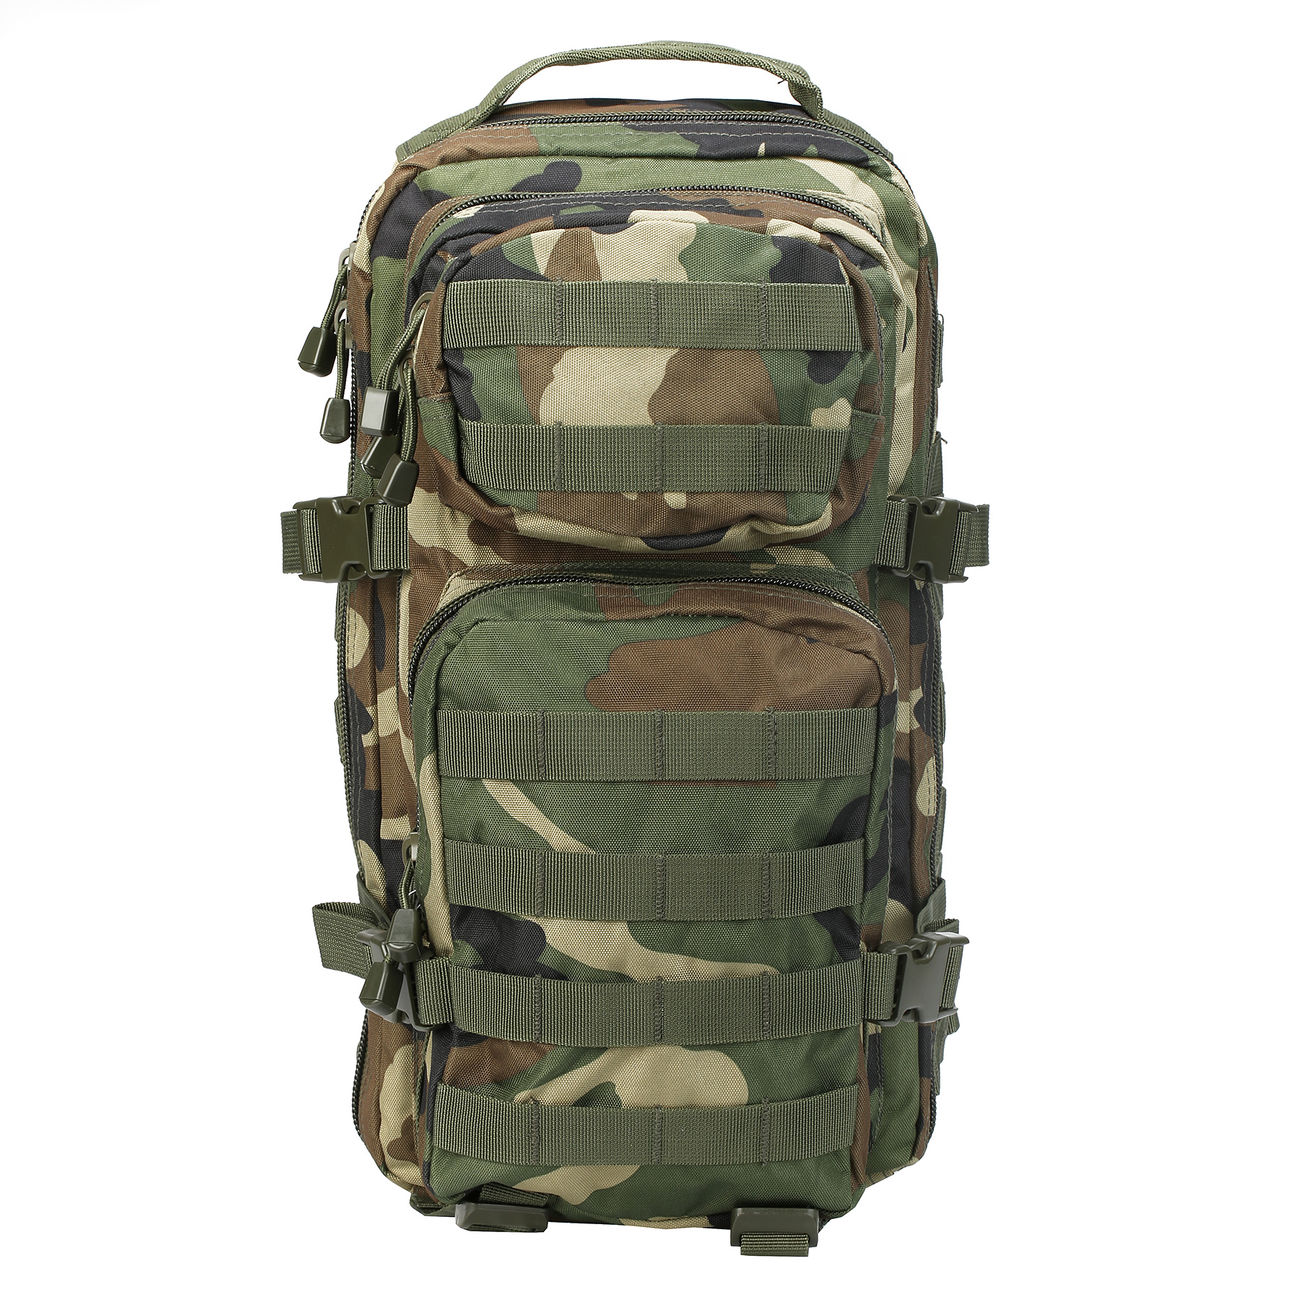 Mil-Tec Rucksack US Assault Pack I 20 Liter woodland 5